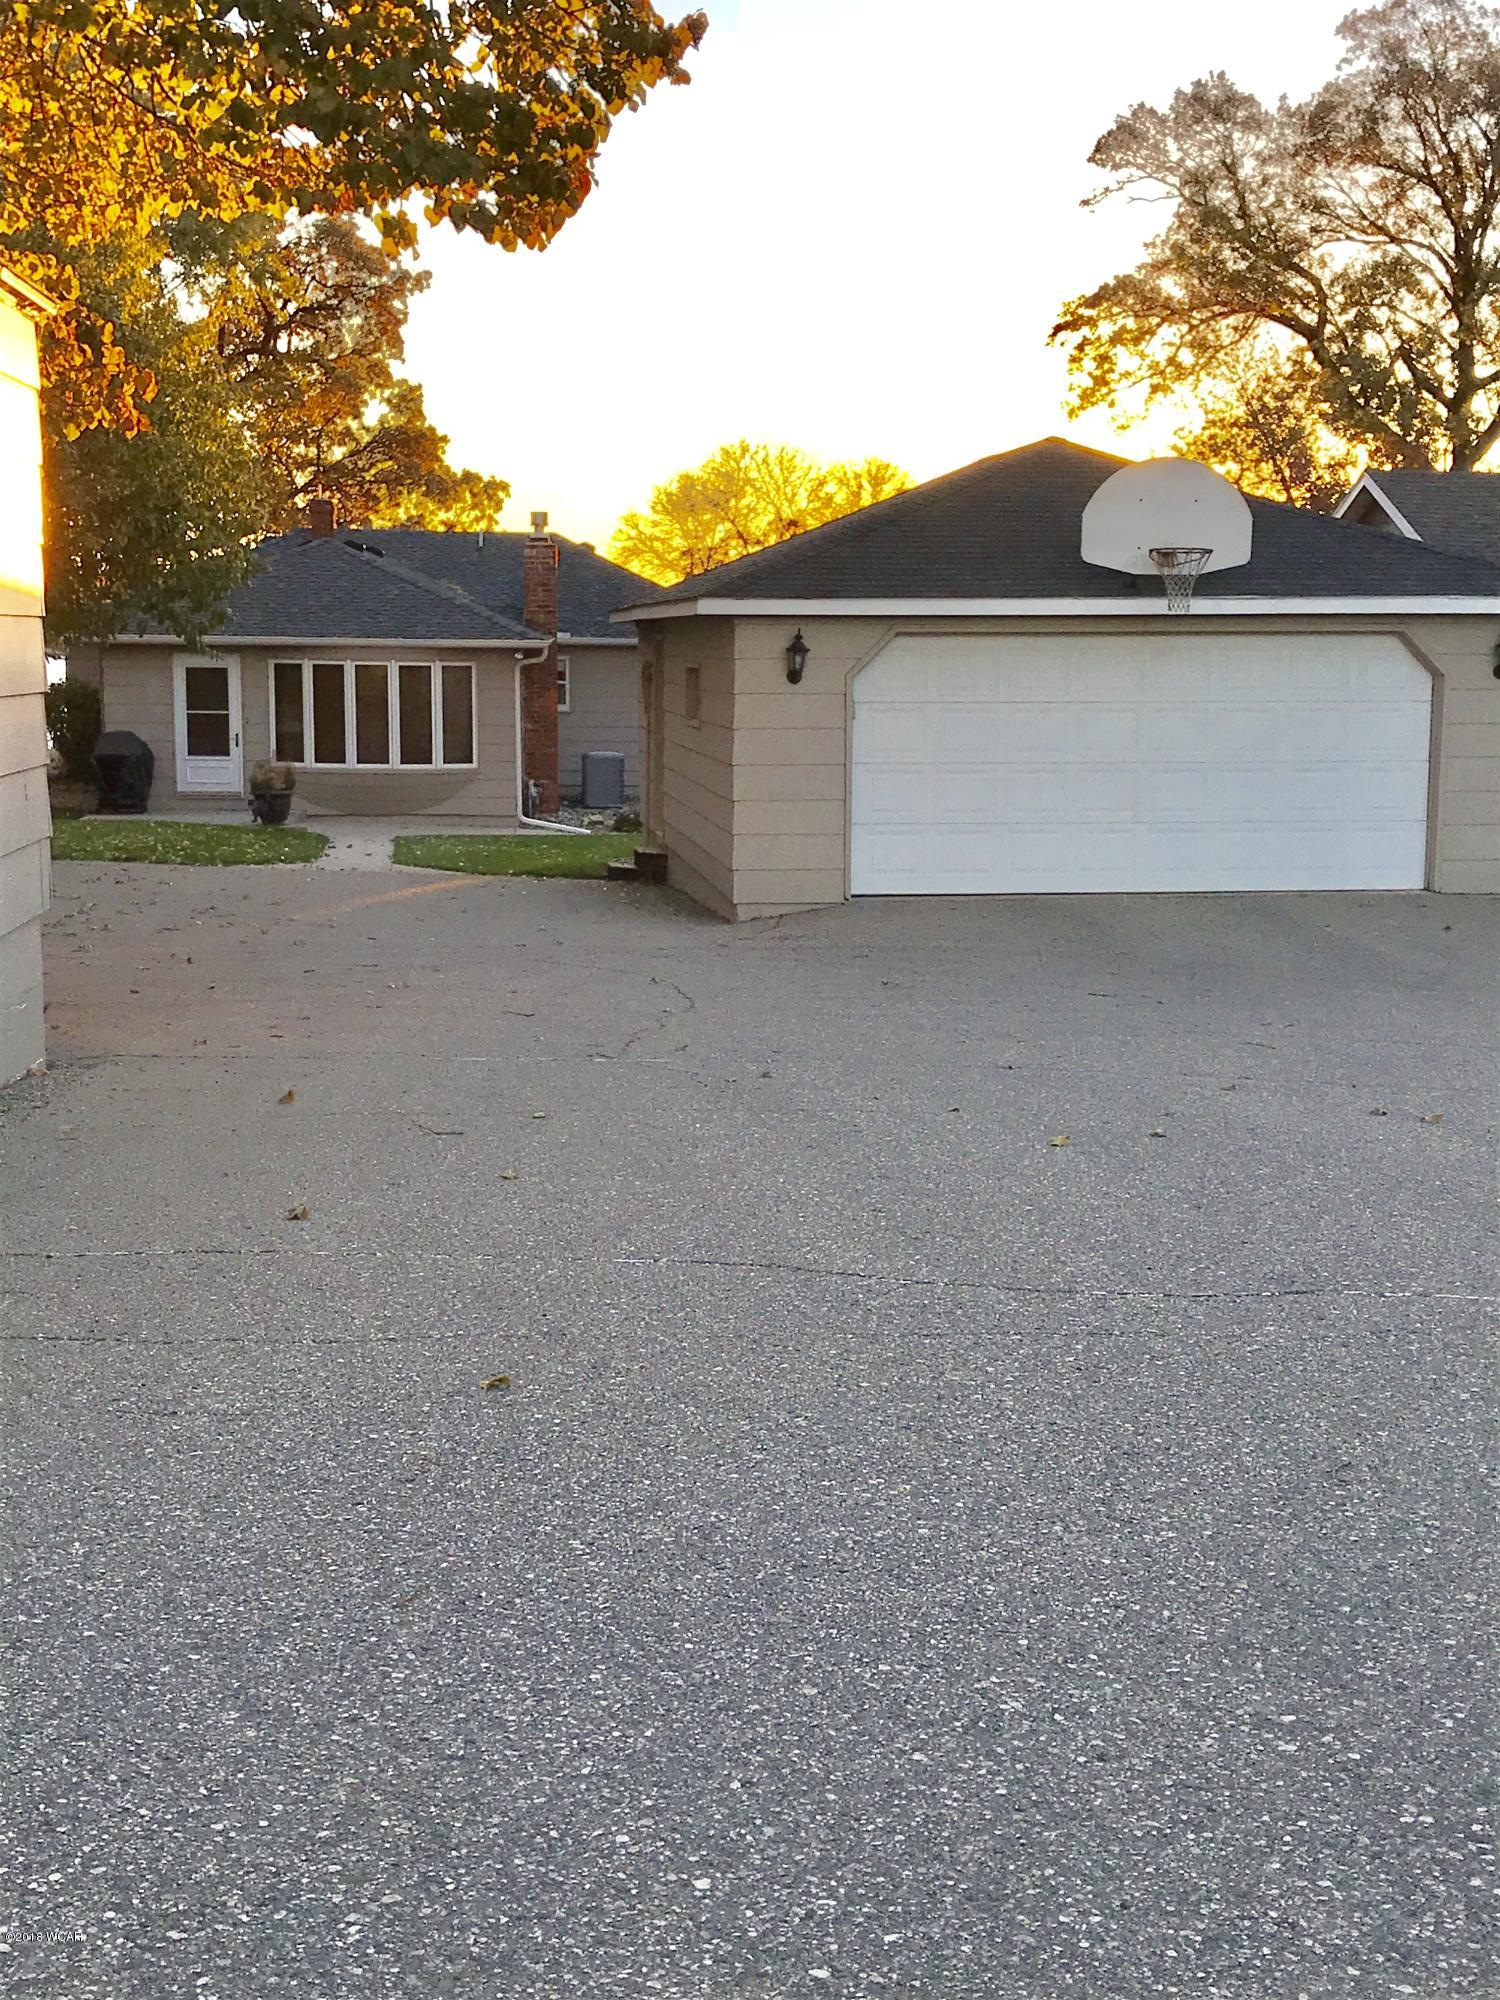 7195 Highway 71,Willmar,3 Bedrooms Bedrooms,3 BathroomsBathrooms,Single Family,Highway 71,6032688